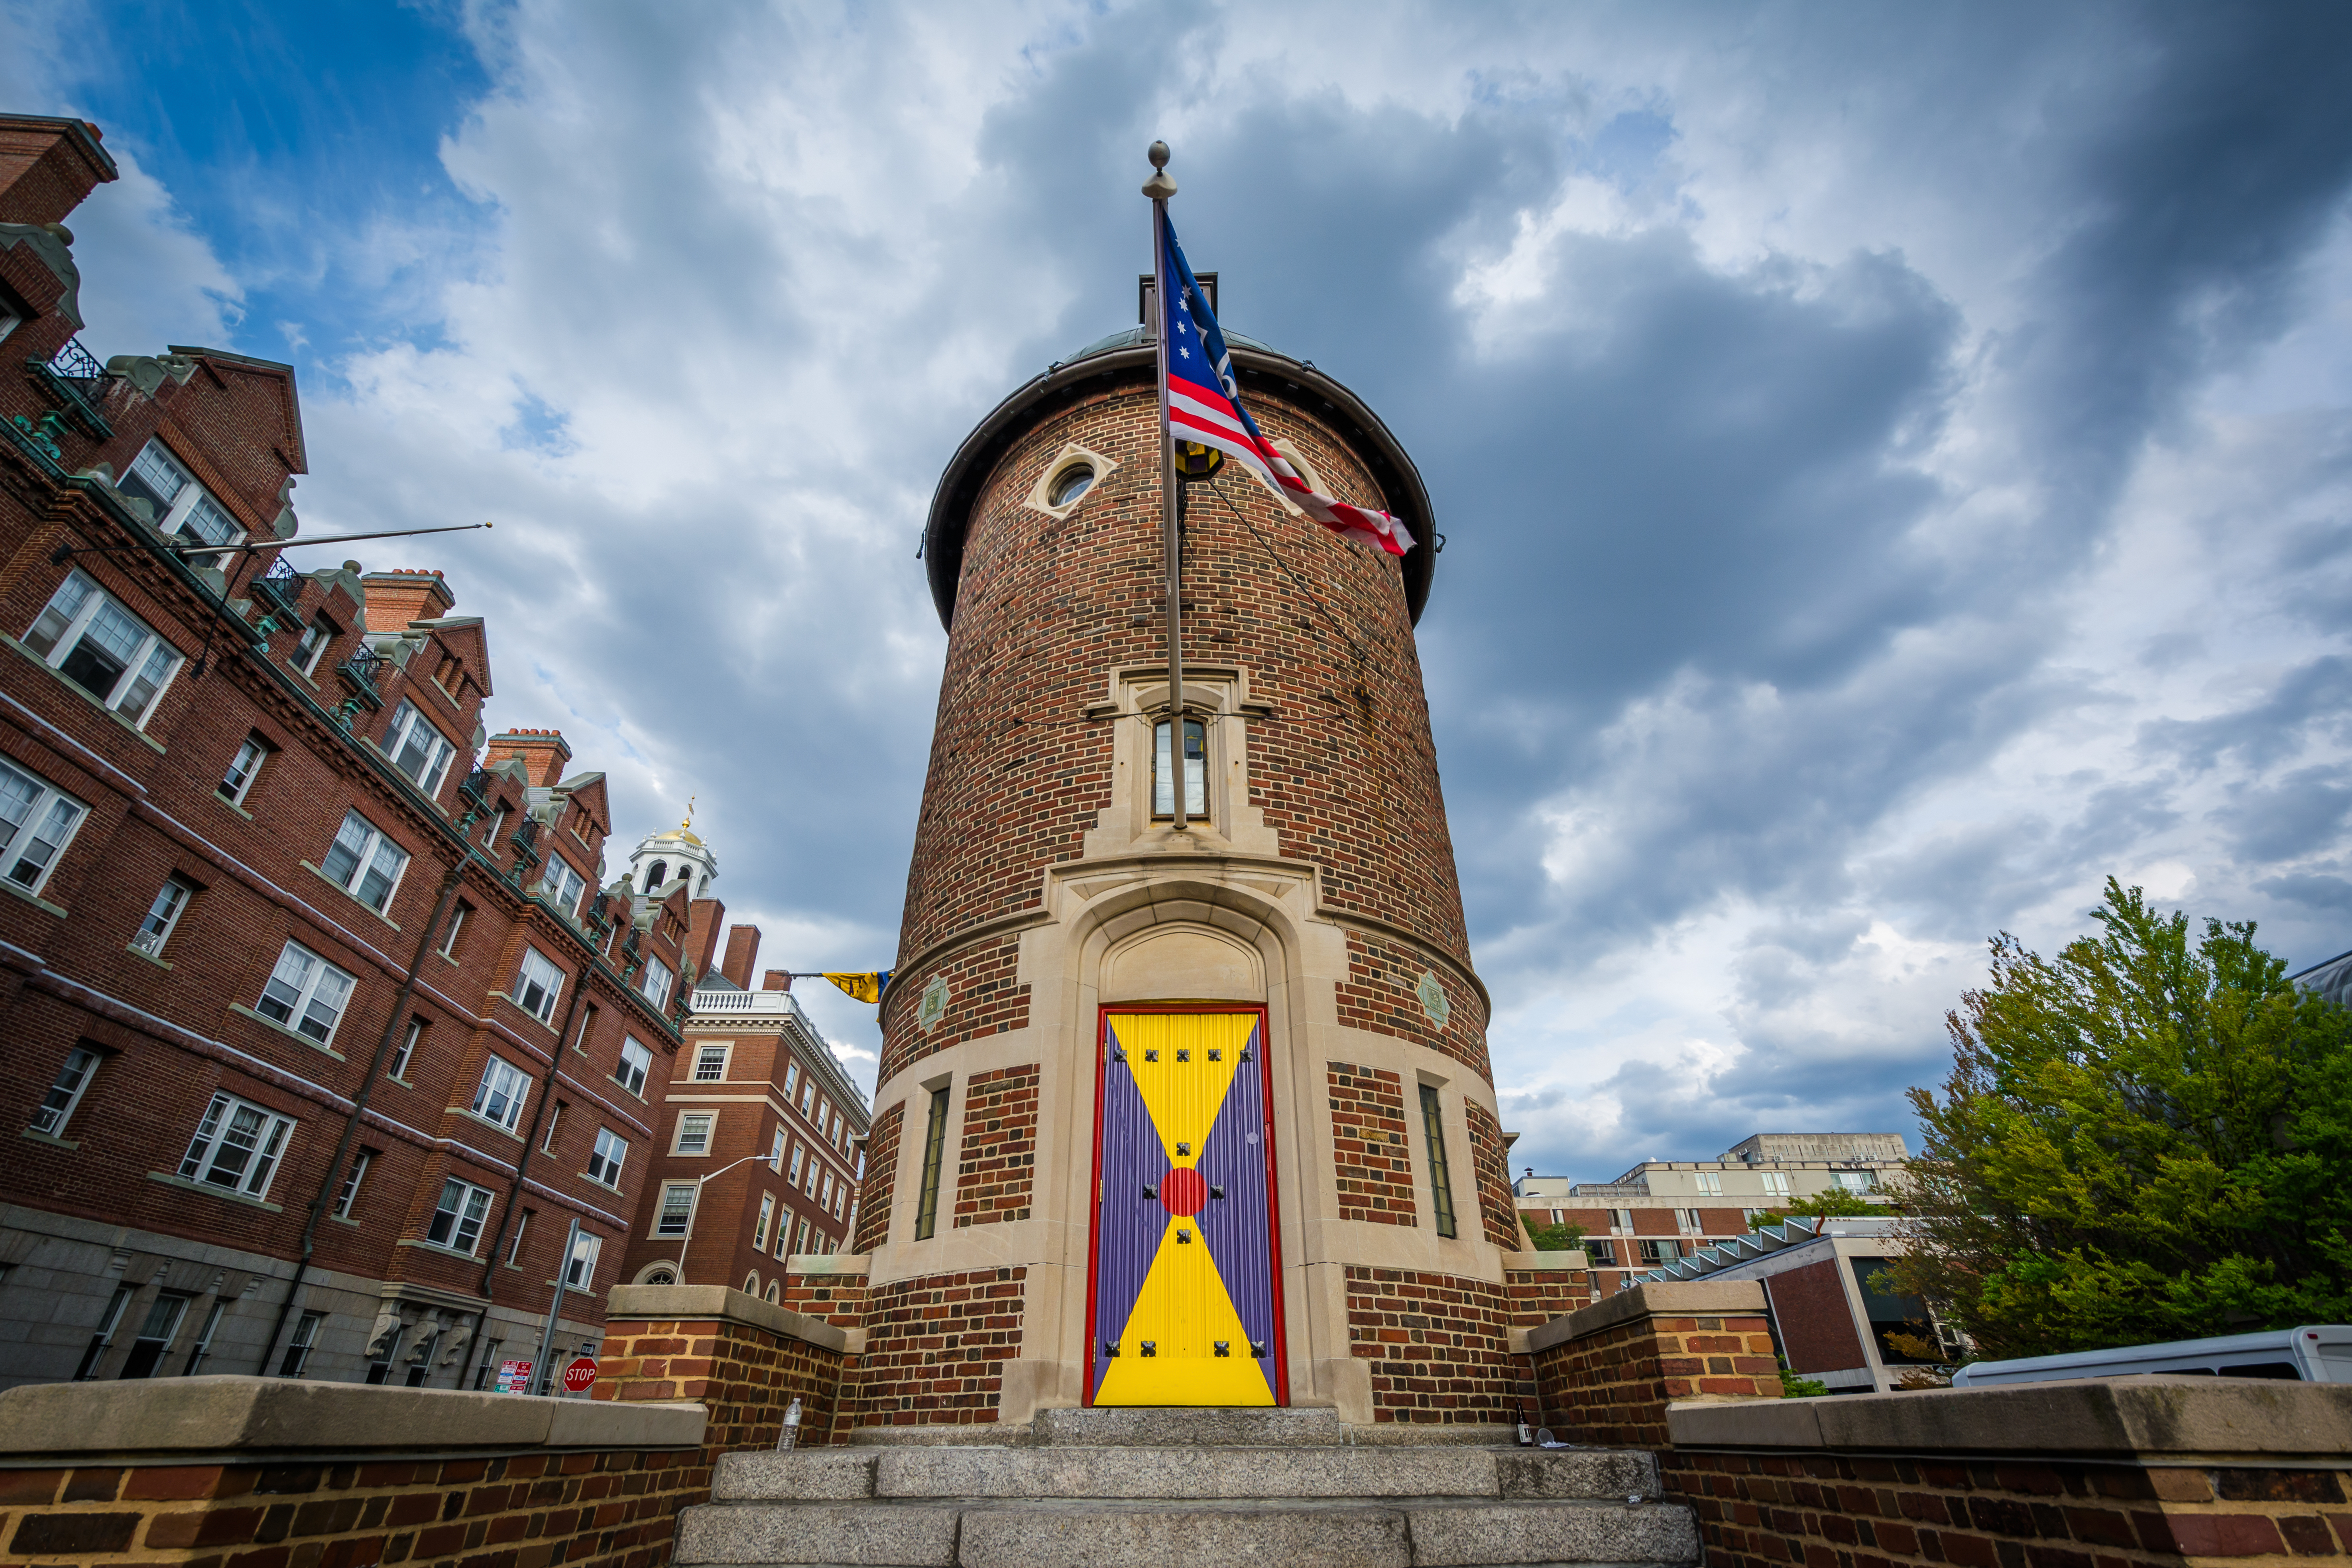 The Harvard Lampoon Building, at Harvard University, in Cambridge, Massachusetts. Jon Bilous, Shutterstock.